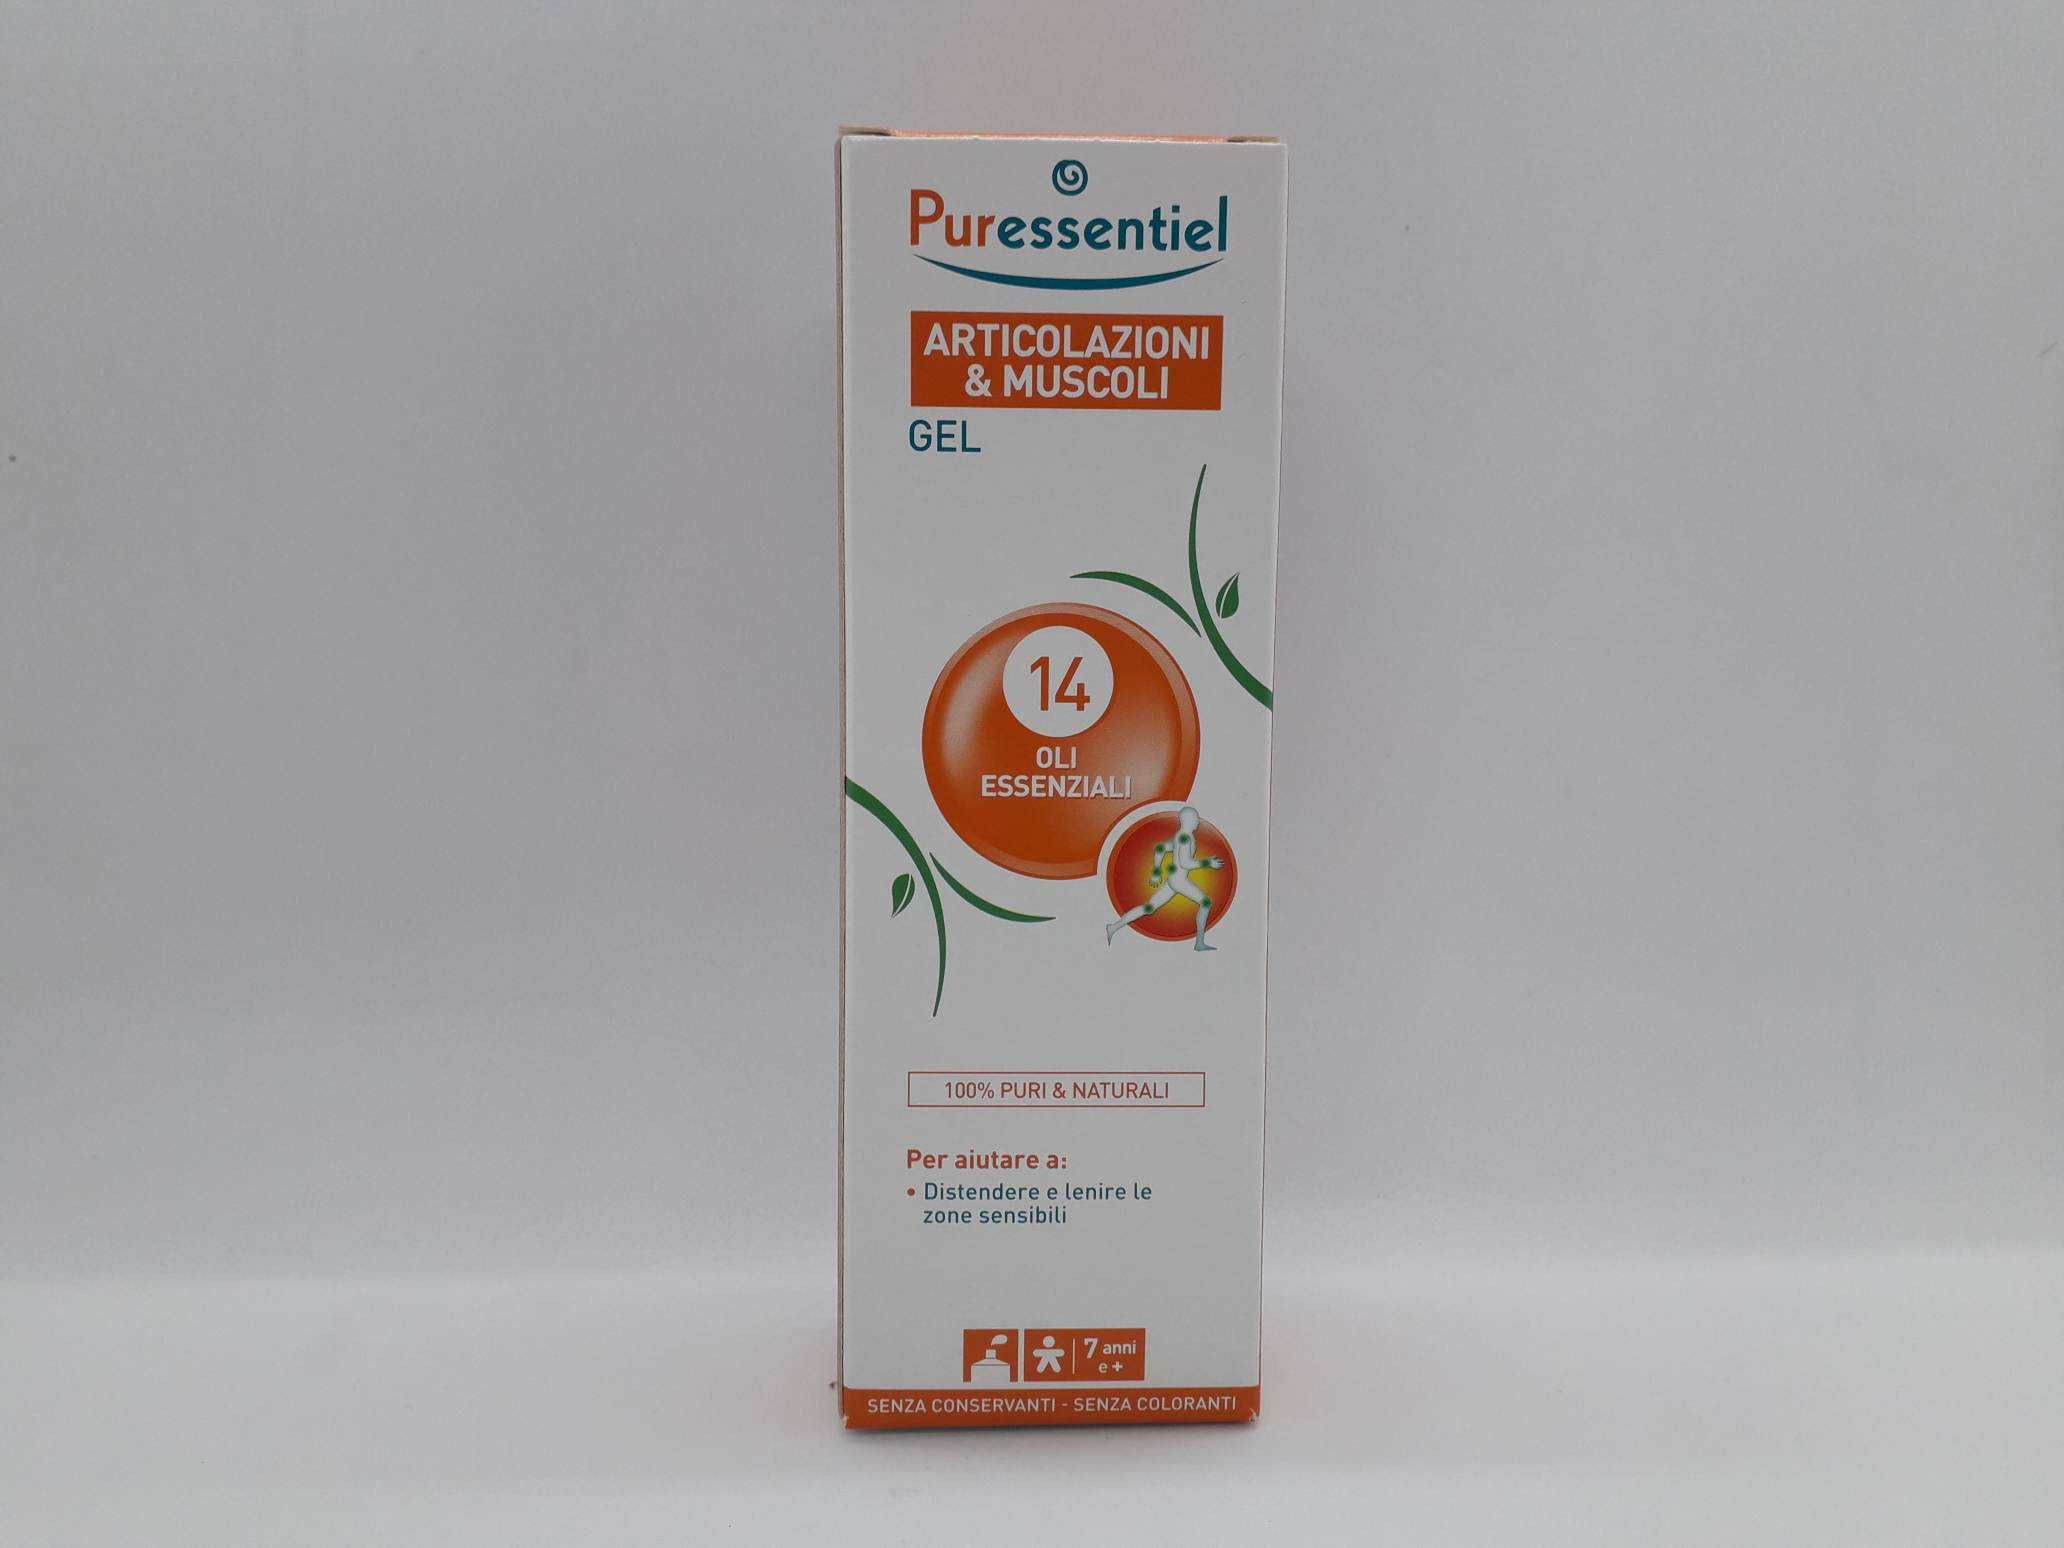 PURESSENTIEL GEL ARTICOLAZIONI & MUSCOLI DISPOSITIVO MEDICO 60 ML - Farmaciaempatica.it